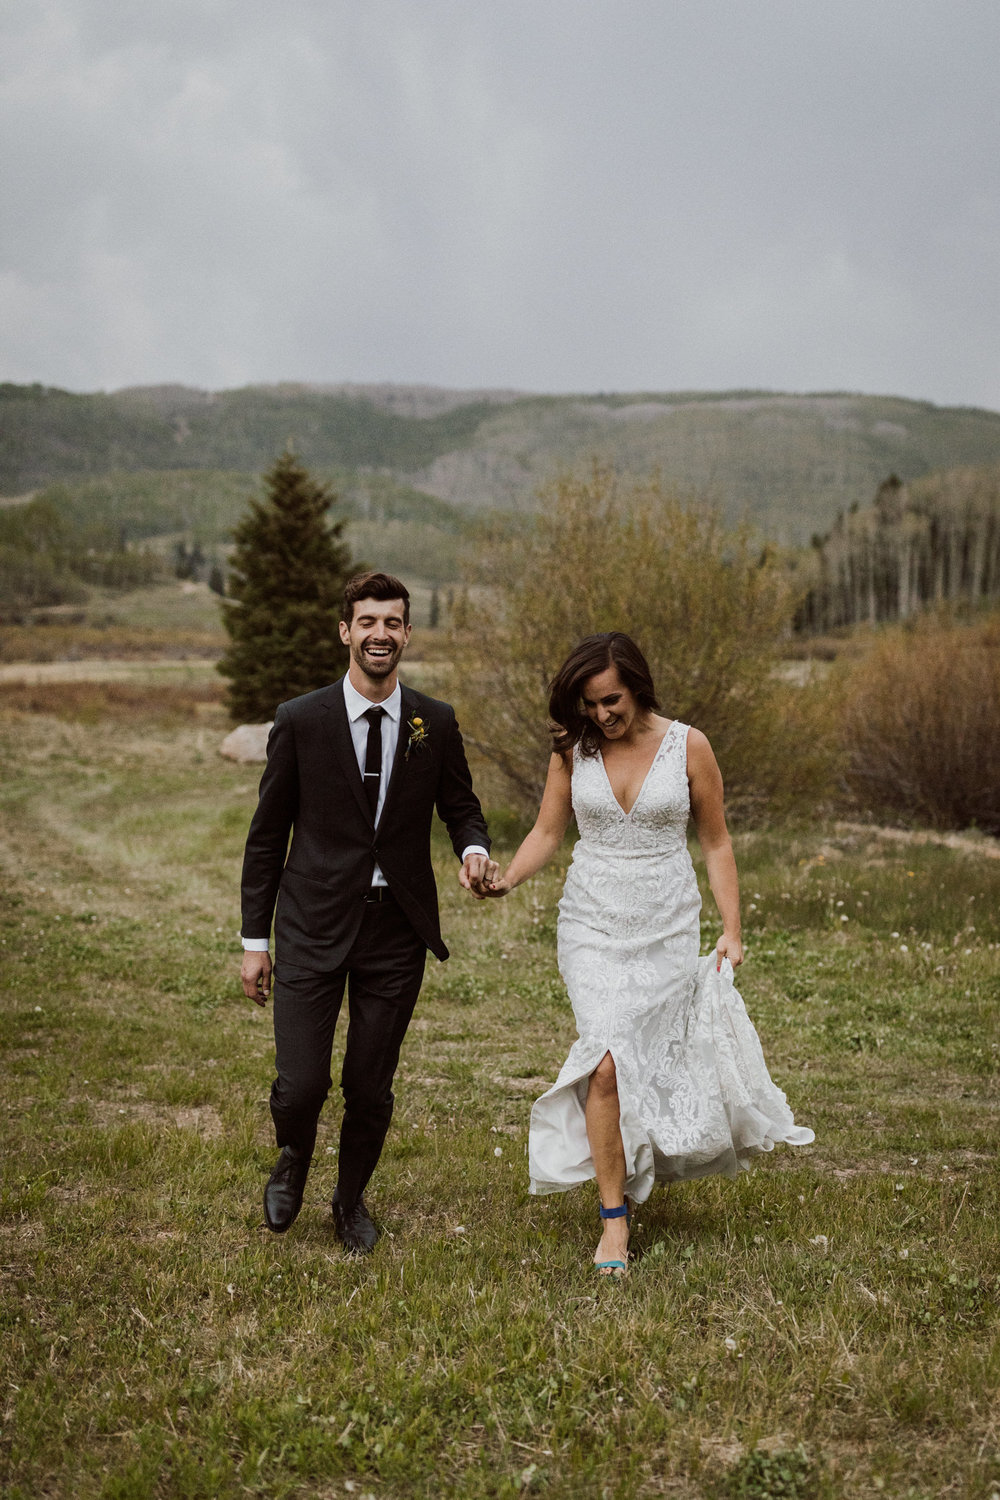 dunton-hot-springs-wedding-colorado-144.jpg